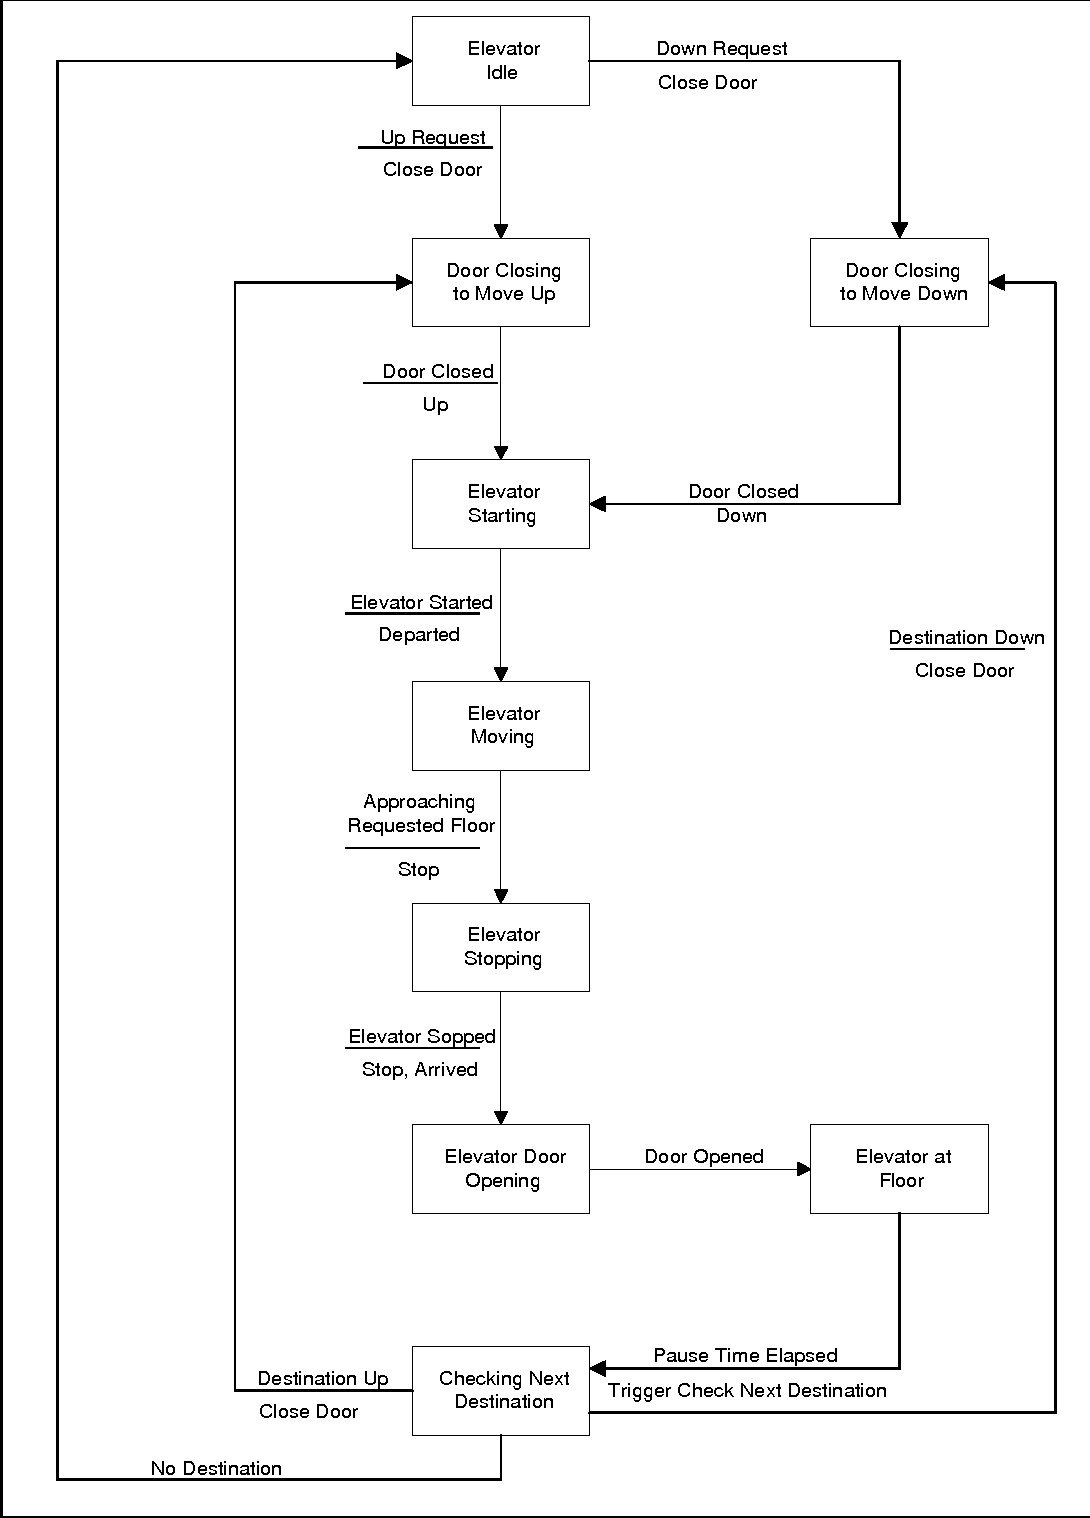 Figure 60 From Appendix D Elevator Control System Case Study Schematic State Transition Diagram For The Controller